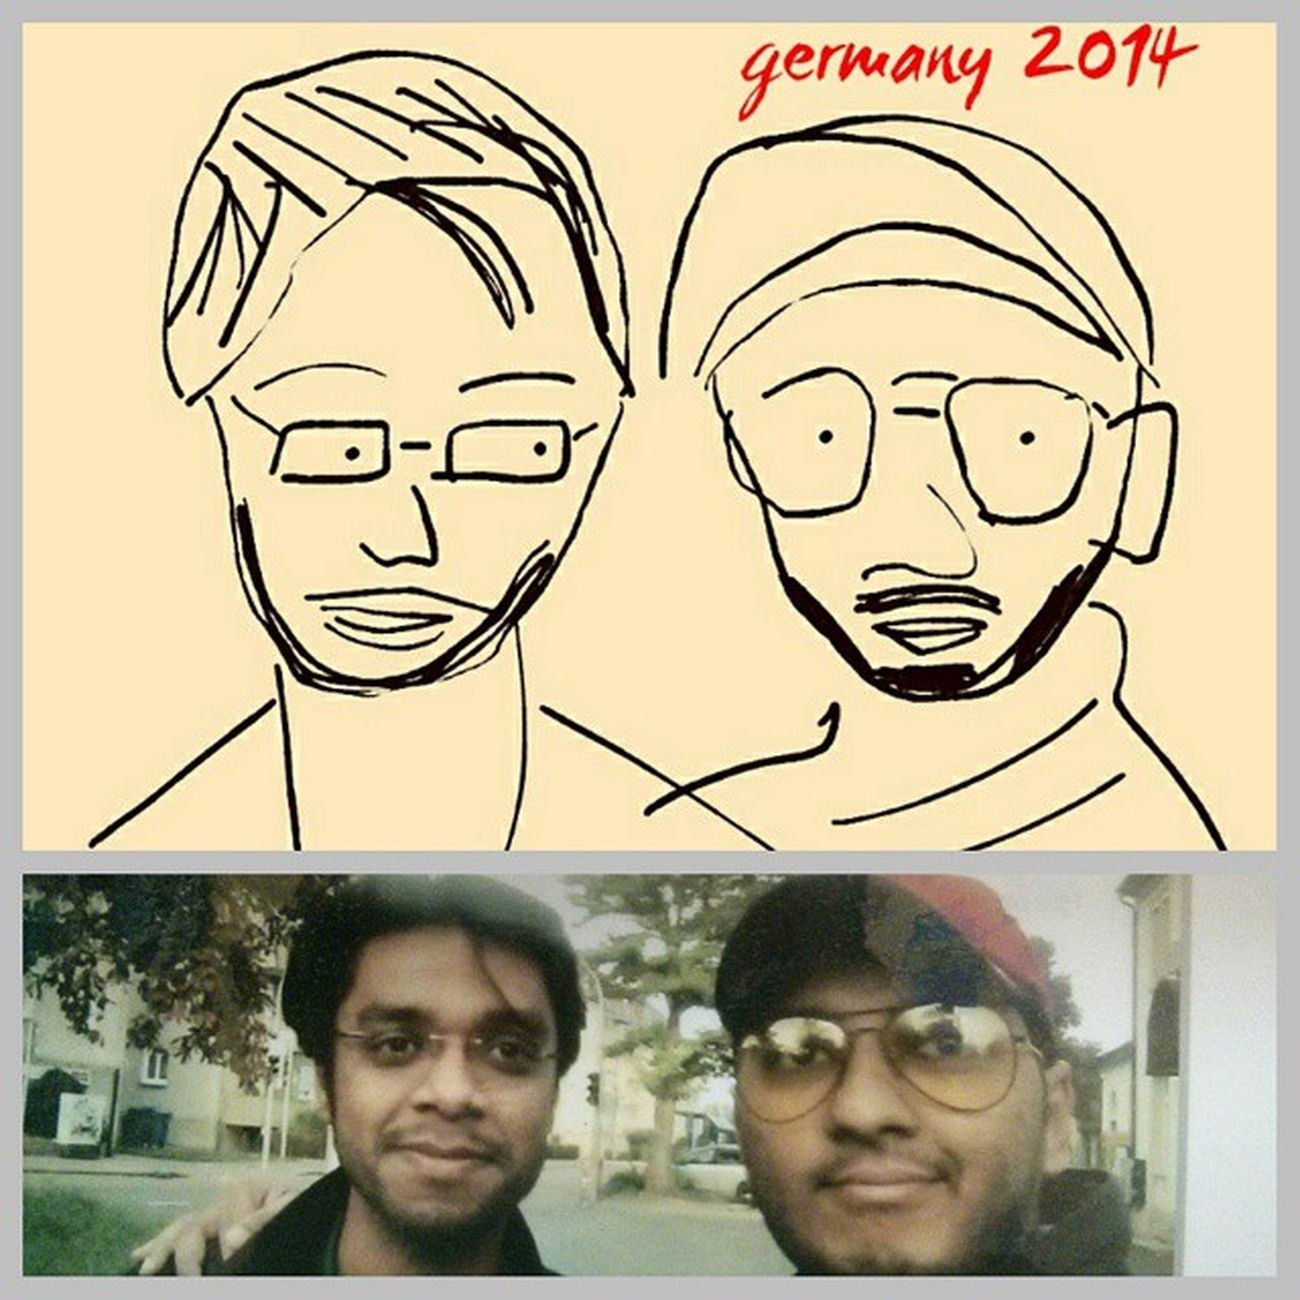 Sketches.. My best friend Sketch Drawings Germany People Best  Wearethebest Bestfriend Bff Dailylife Instamood Happiness Pondicherry Aviator Opium Goggles Friends Family